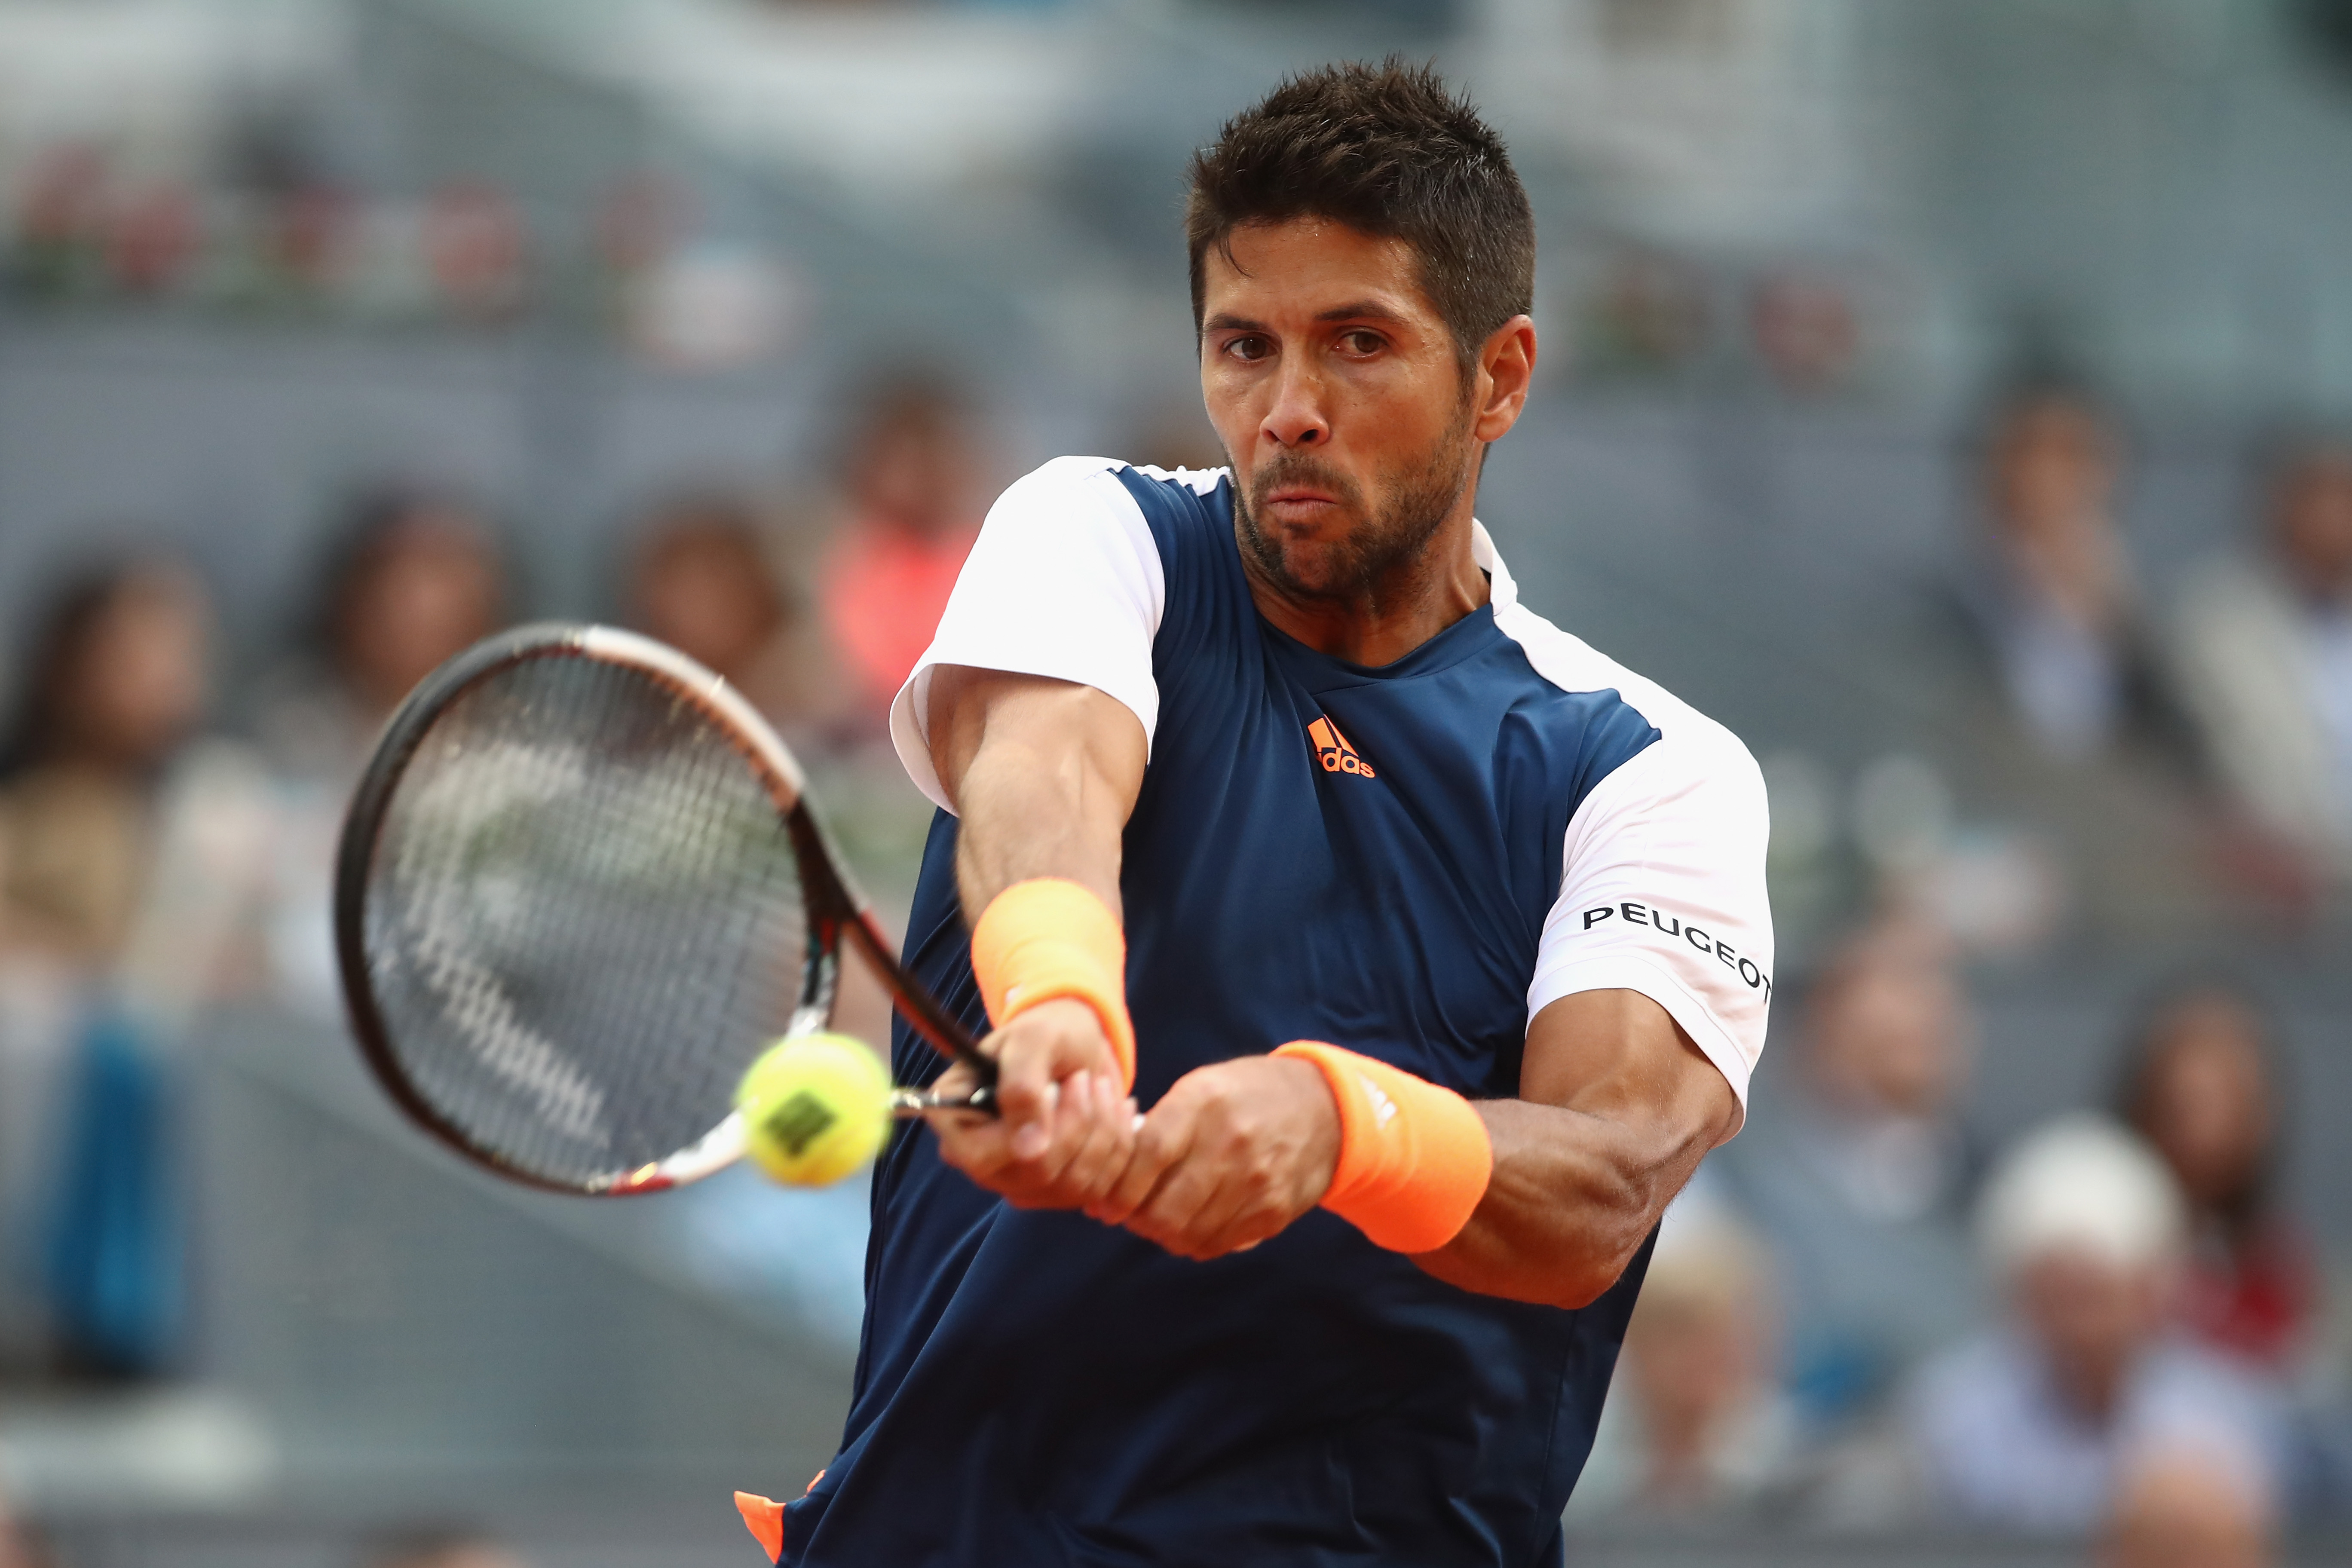 MADRID, SPAIN - MAY 09: Fernando Verdasco of Spain in action against Alexander Zverev of Germany during day four of the Mutua Madrid Open tennis at La Caja Magica on May 9, 2017 in Madrid, Spain. (Photo by Julian Finney/Getty Images)